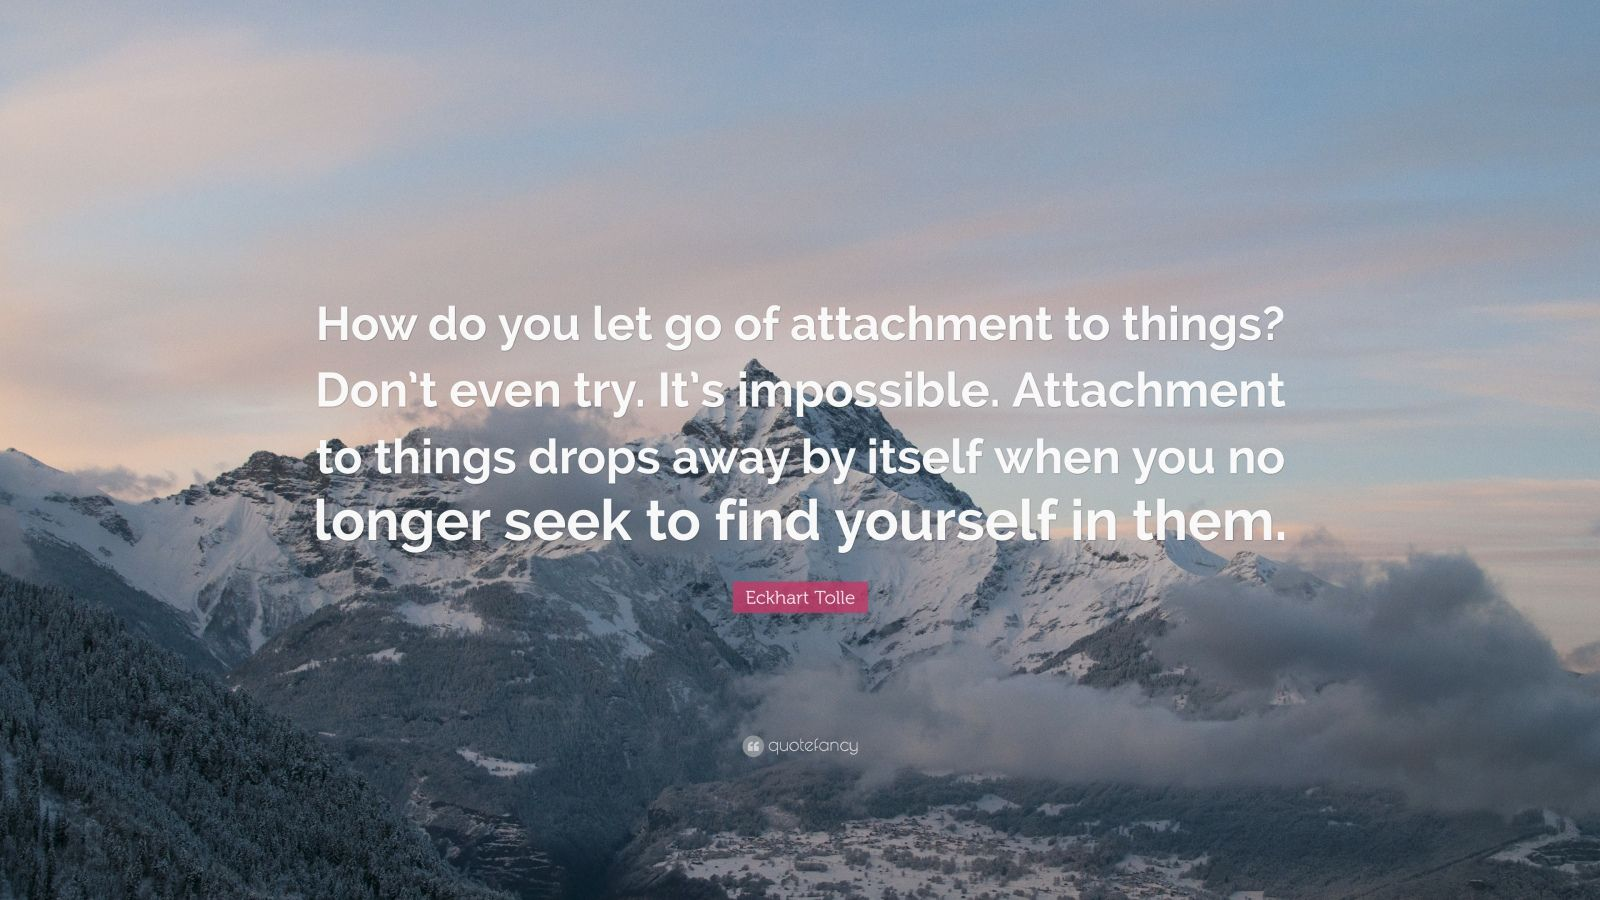 "Eckhart Tolle Quote: ""How do you let go of attachment to things? Don't even try. It's impossible. Attachment to things drops away by itself when you no longer seek to find yourself in them."""